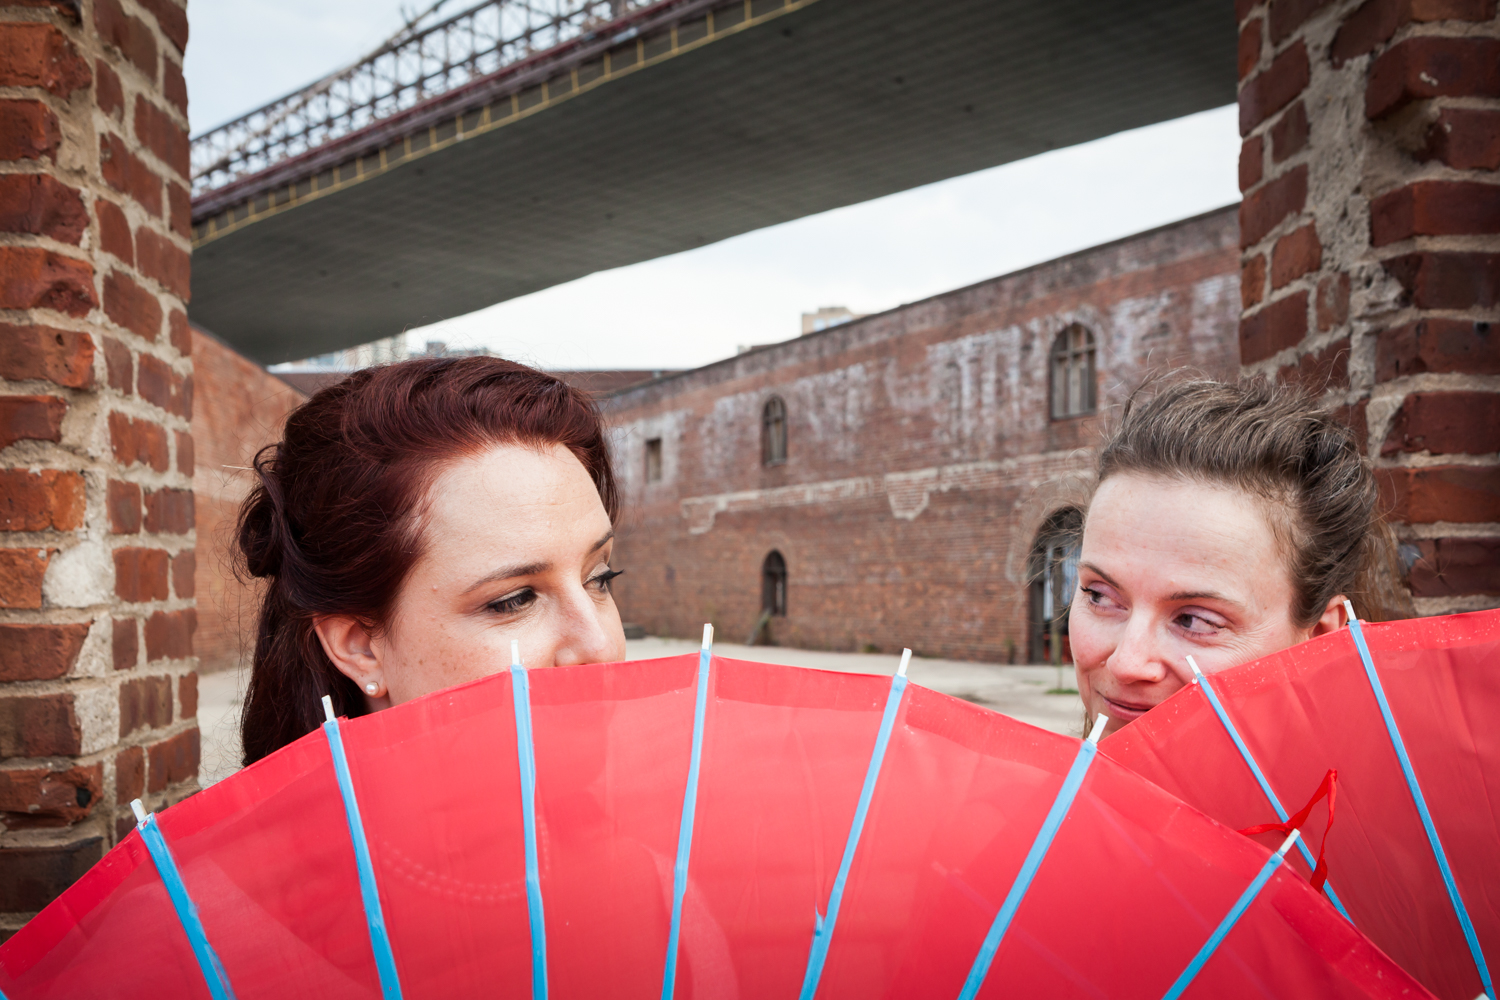 Bride and bridesmaid looking over edge of red umbrella